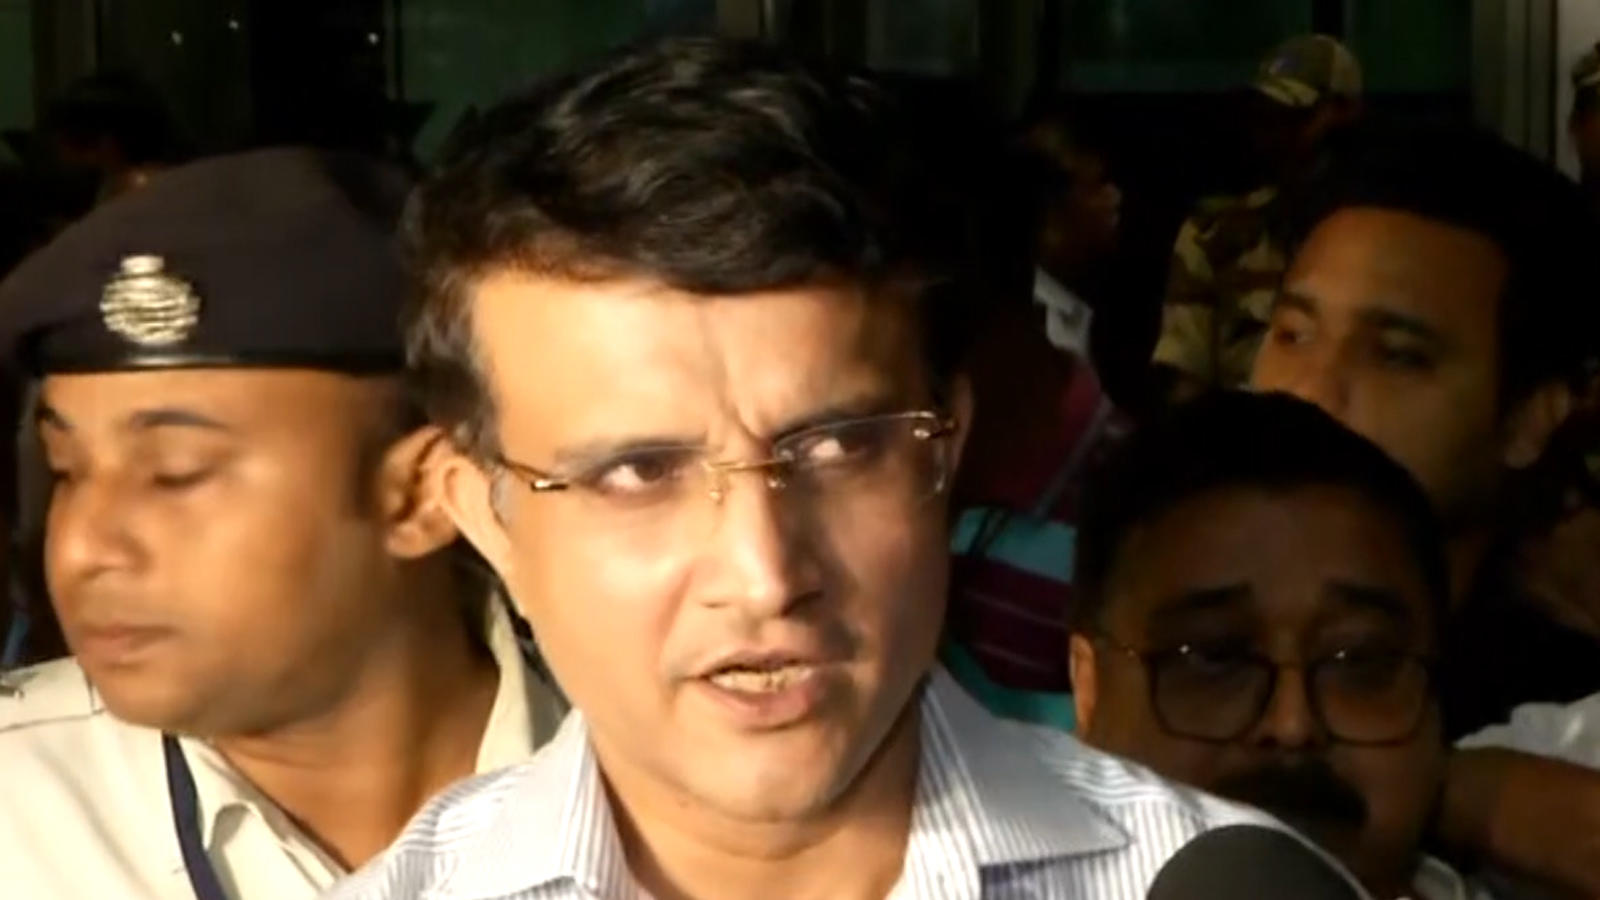 bcci-have-faith-in-me-and-my-abilities-sourav-ganguly